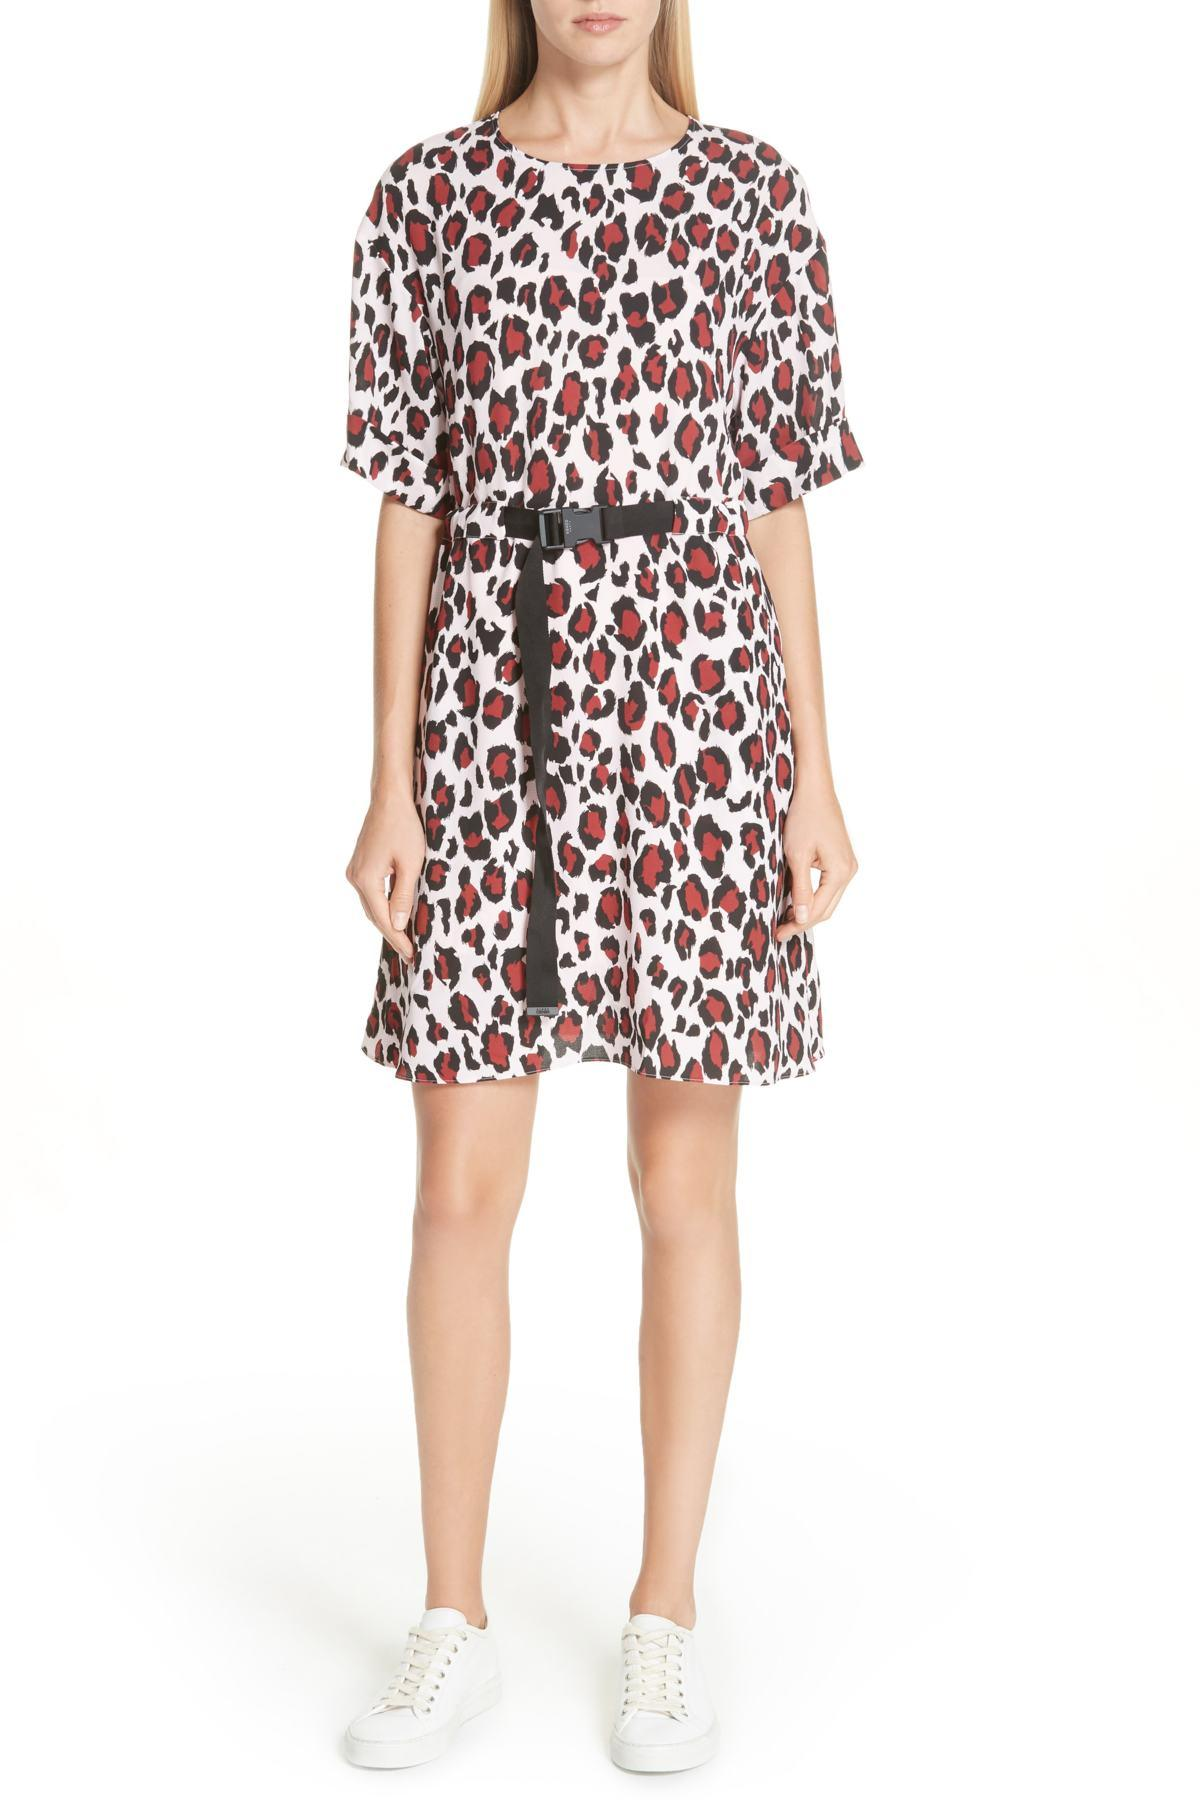 40a47597e Lyst - KENZO Animal Print Belted Dress in Pink